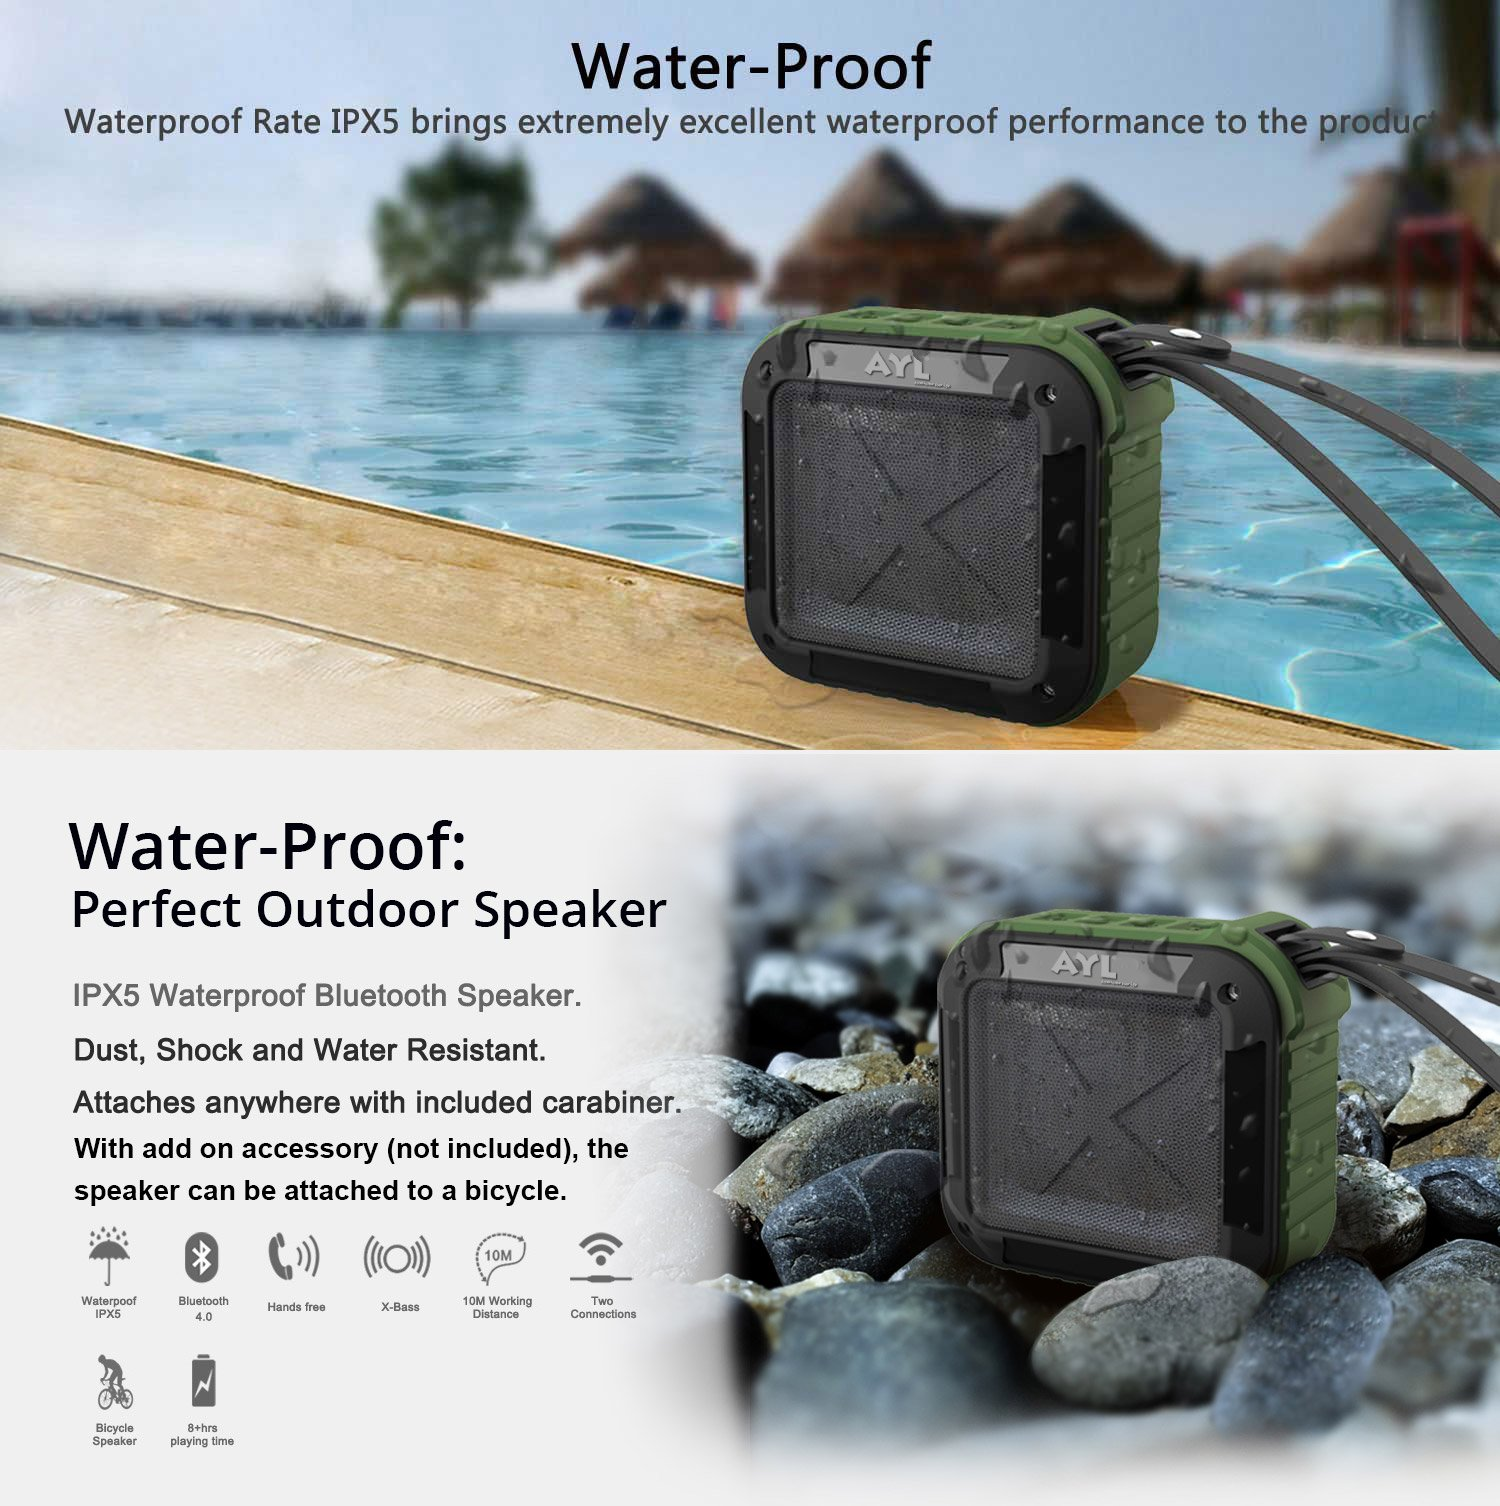 Portable Outdoor and Shower Bluetooth 4.1 Speaker by AYL SoundFit, Water Resistant, Wireless with 10 Hour Rechargeable Battery Life, Powerful Audio Driver, Pairs with All Bluetooth Device (Ocean Blue) by AYL (Image #6)